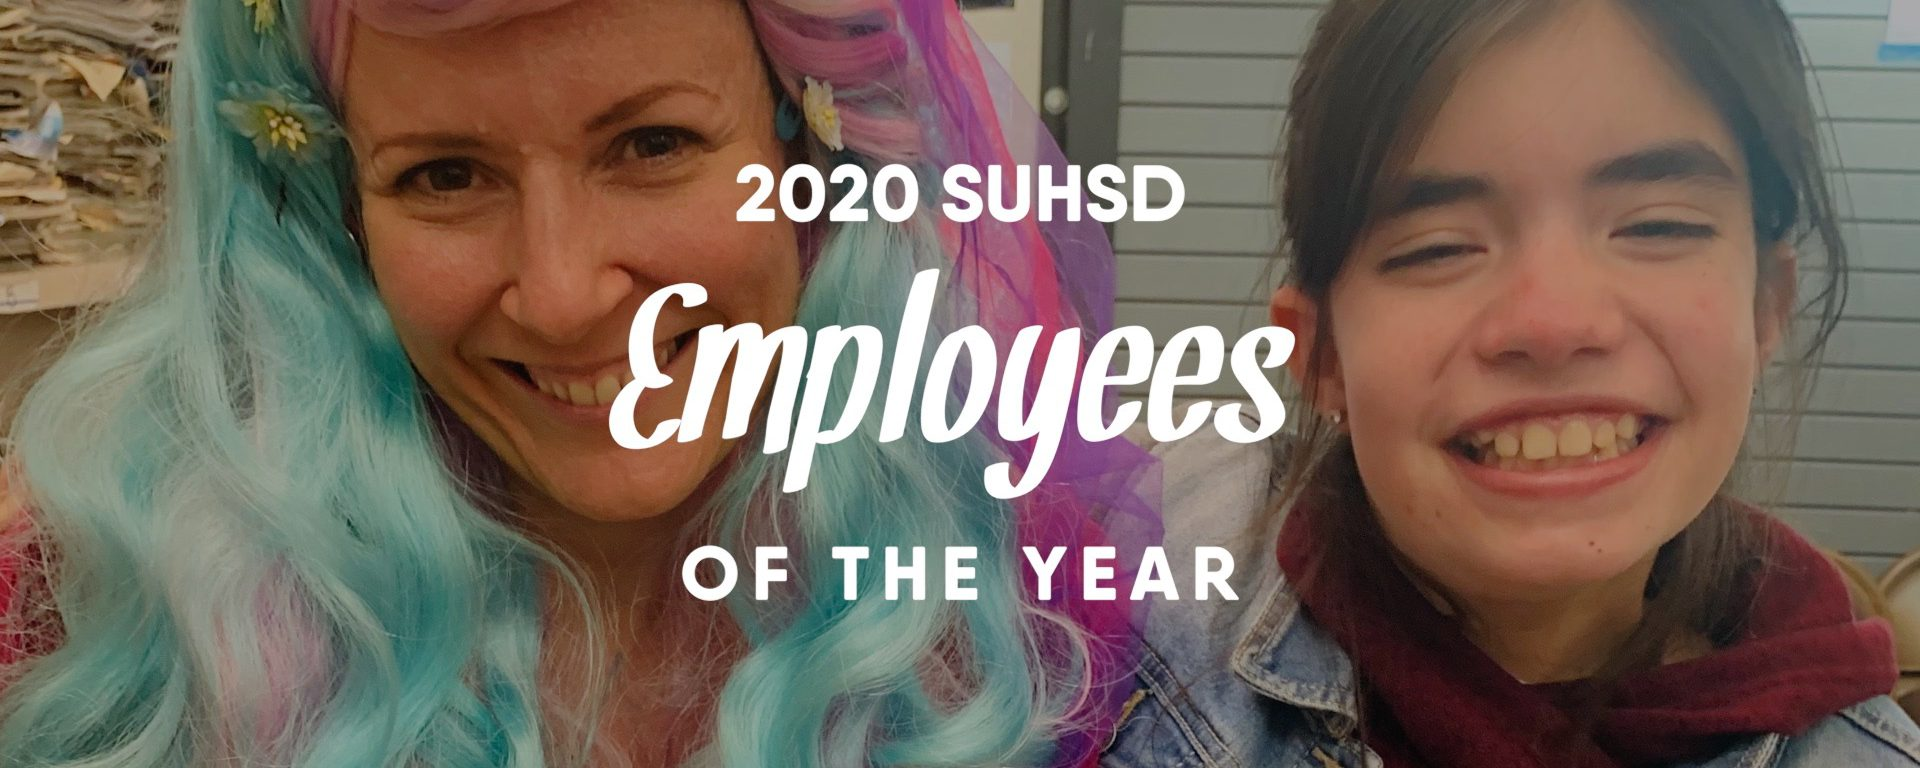 2020 SUHSD Employees of the Year Video